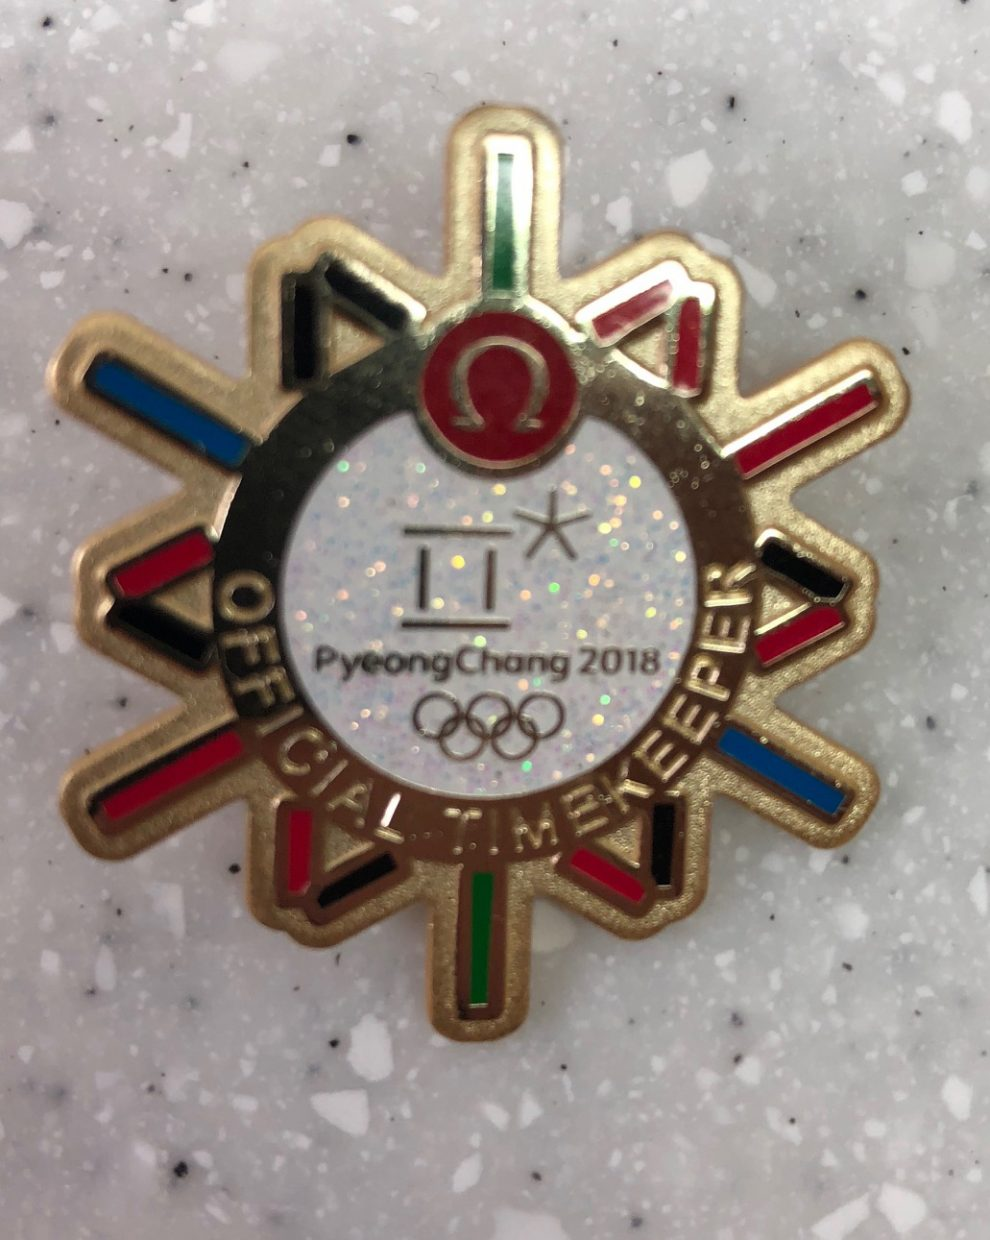 """Omega """"Official timekeeper"""" pin: Acquired: Ed Stoner, who got it from a pin trader. Thoughts: I don't love the corporate sponsor pins, but this is a sharp looking one. It was one of my first trades. Stoner — a Swift employee, previously the editor of the Vail Daily, a veteran of the 2014 Olympics and my main travel partner —traded a bunch of pins with a pin trader outside the MPC in the first few days of the Olympics. He ended up with a few doubles, and he swapped them to me to get some stock of Steamboat pins. Rating: 7"""